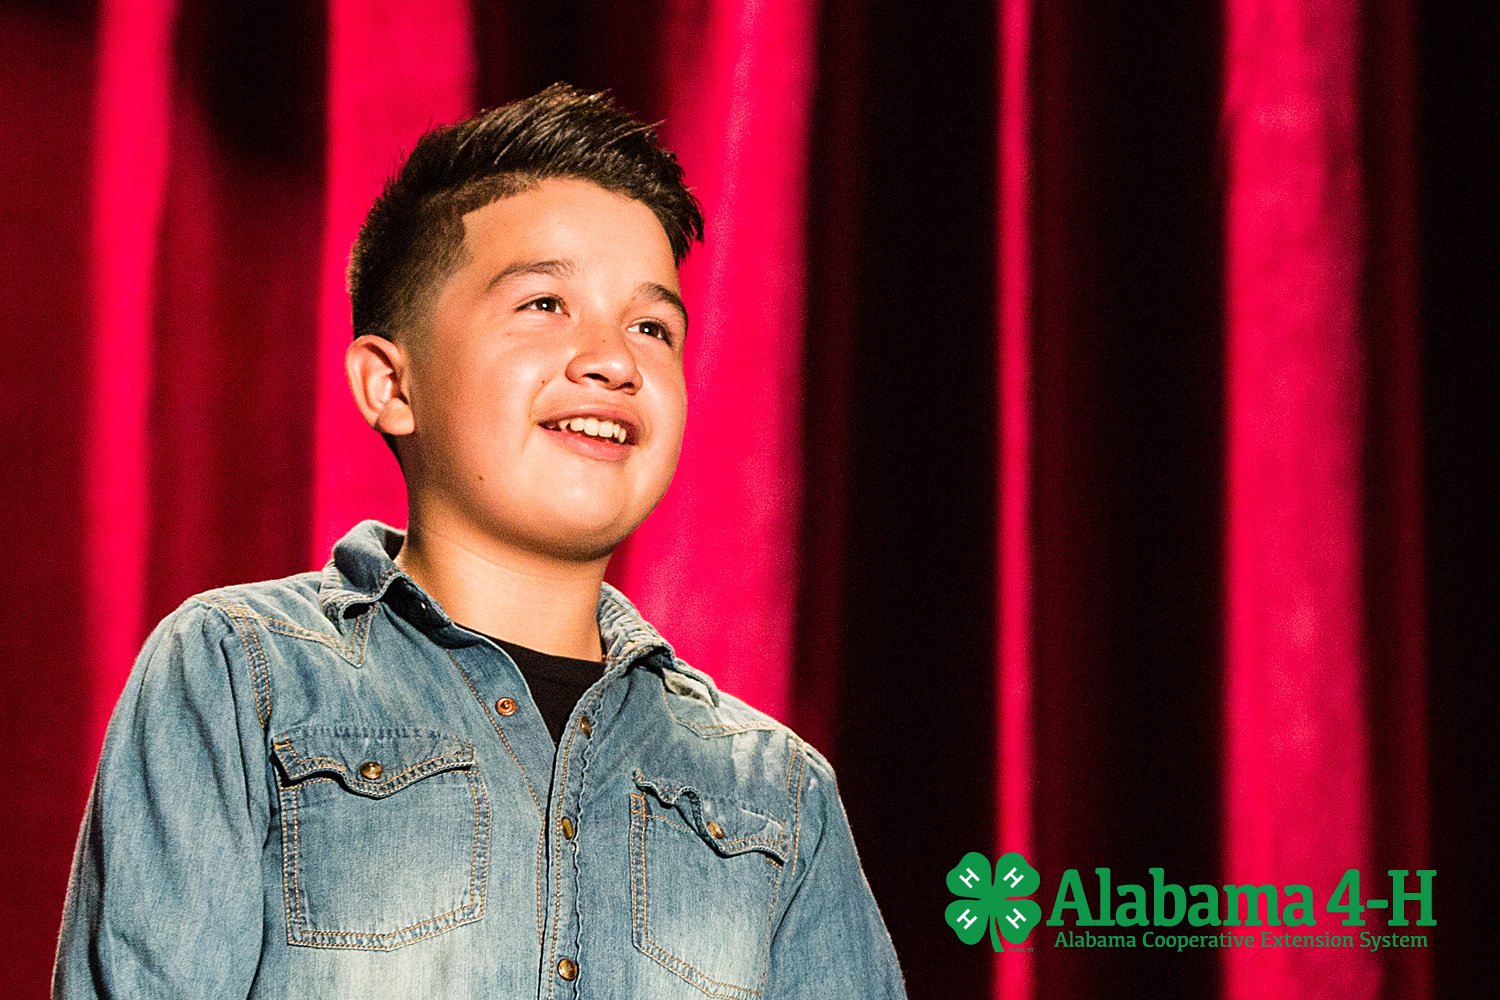 Alabama 4-H Junior Achievement; young boy speaking on stage